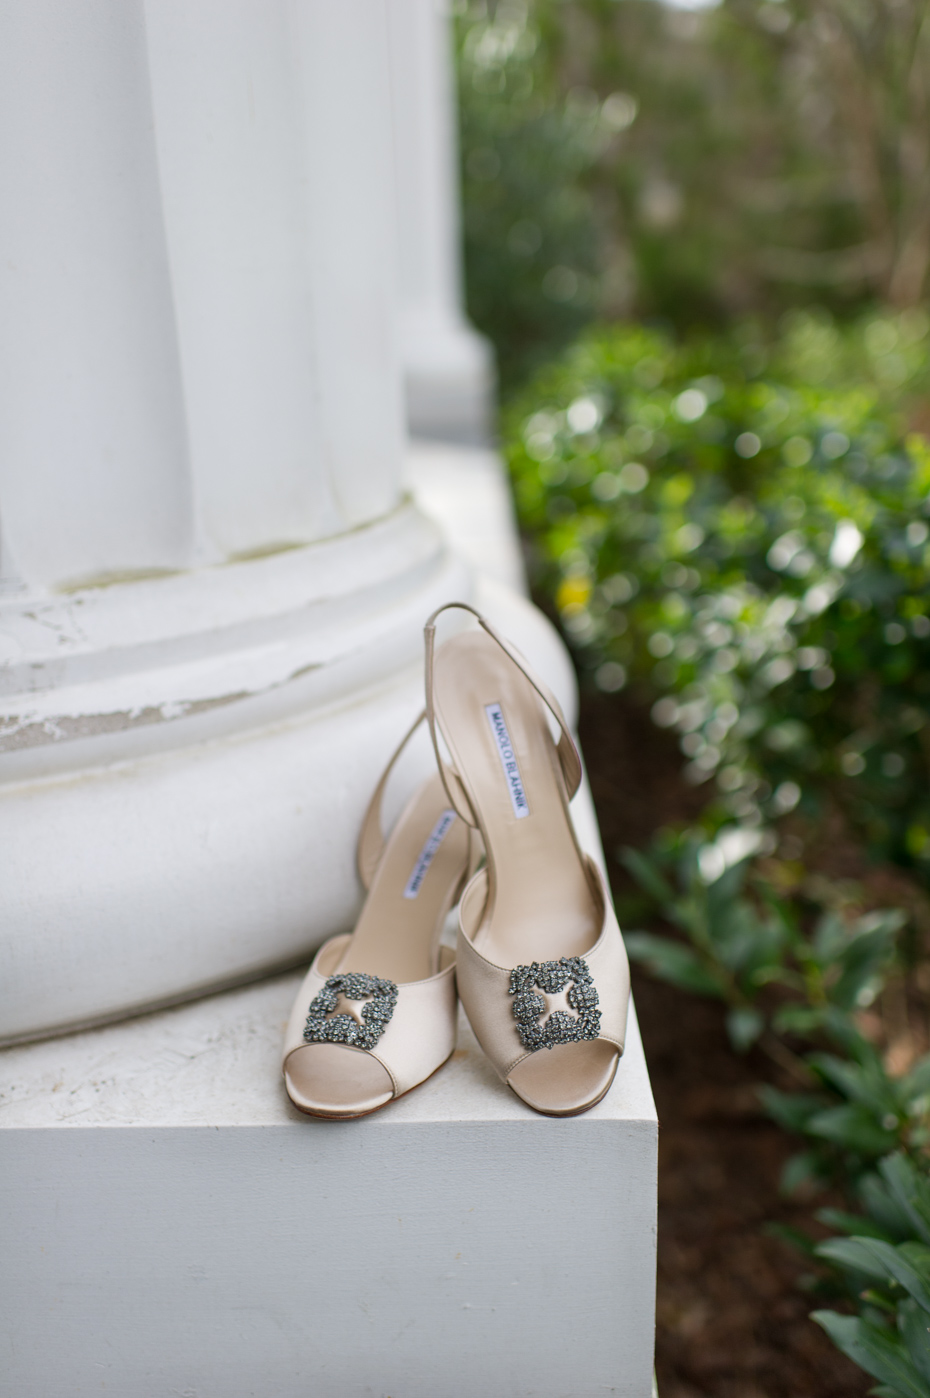 Manolo Blahnik Cassia Wedding Shoes